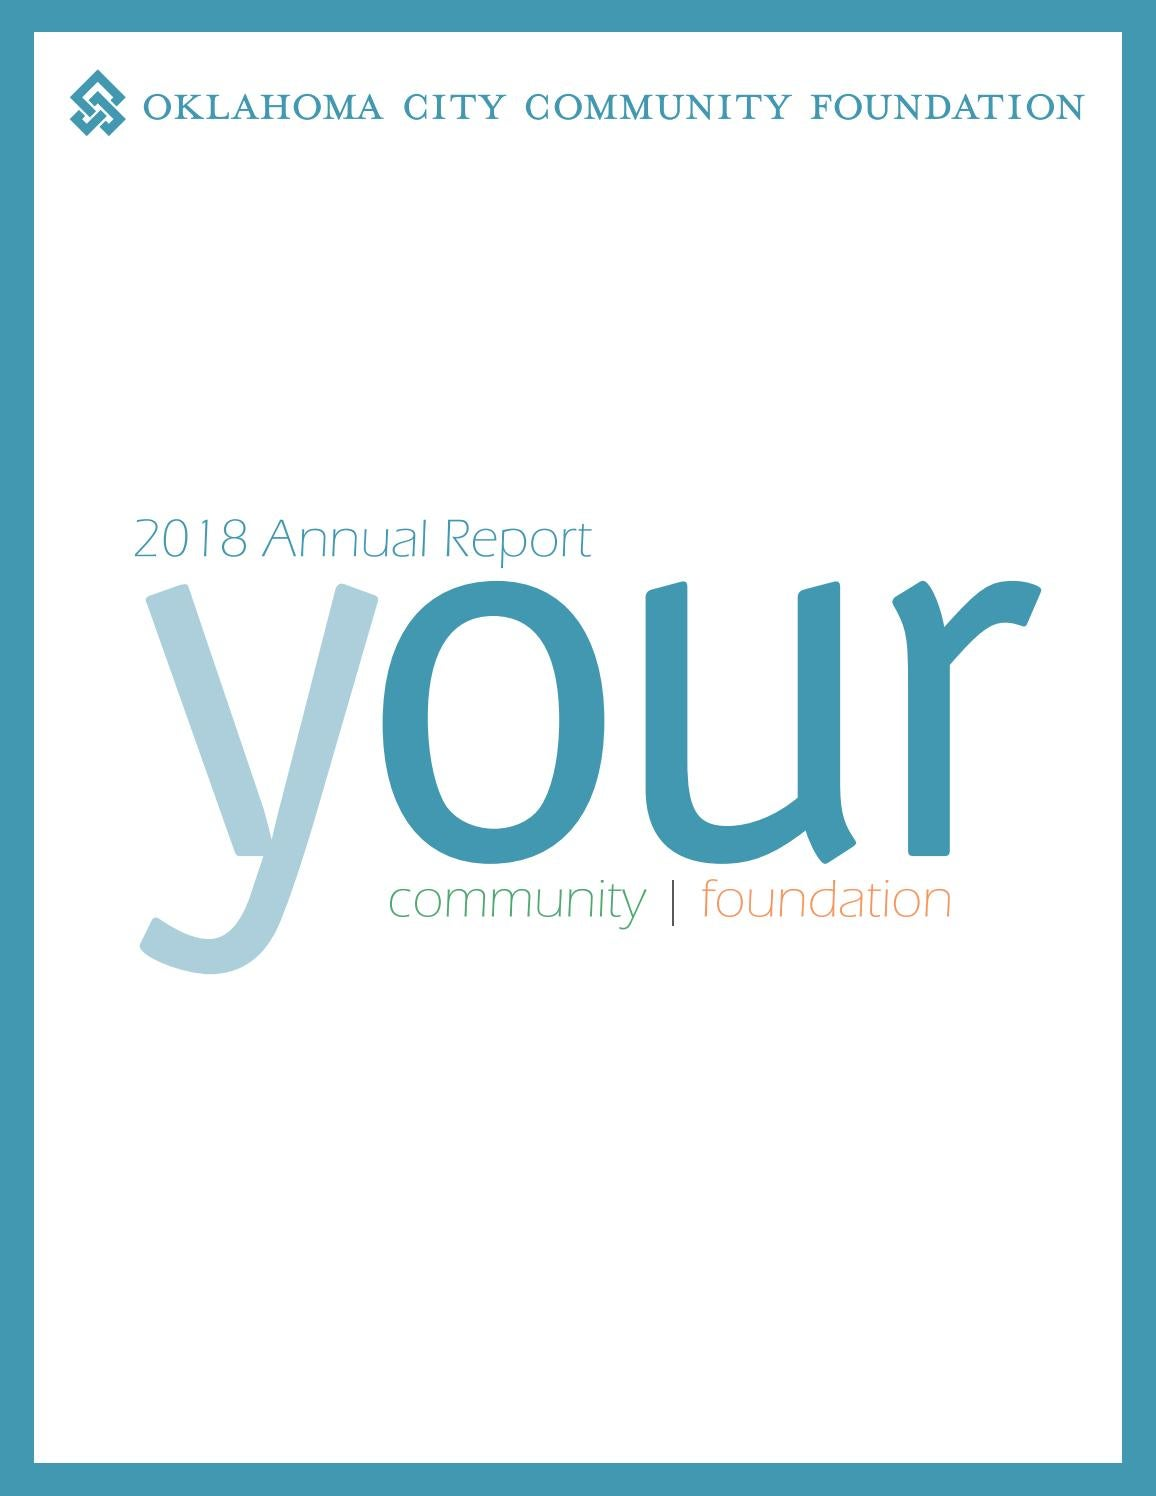 Oklahoma City Community Foundation 2018 Annual Report by